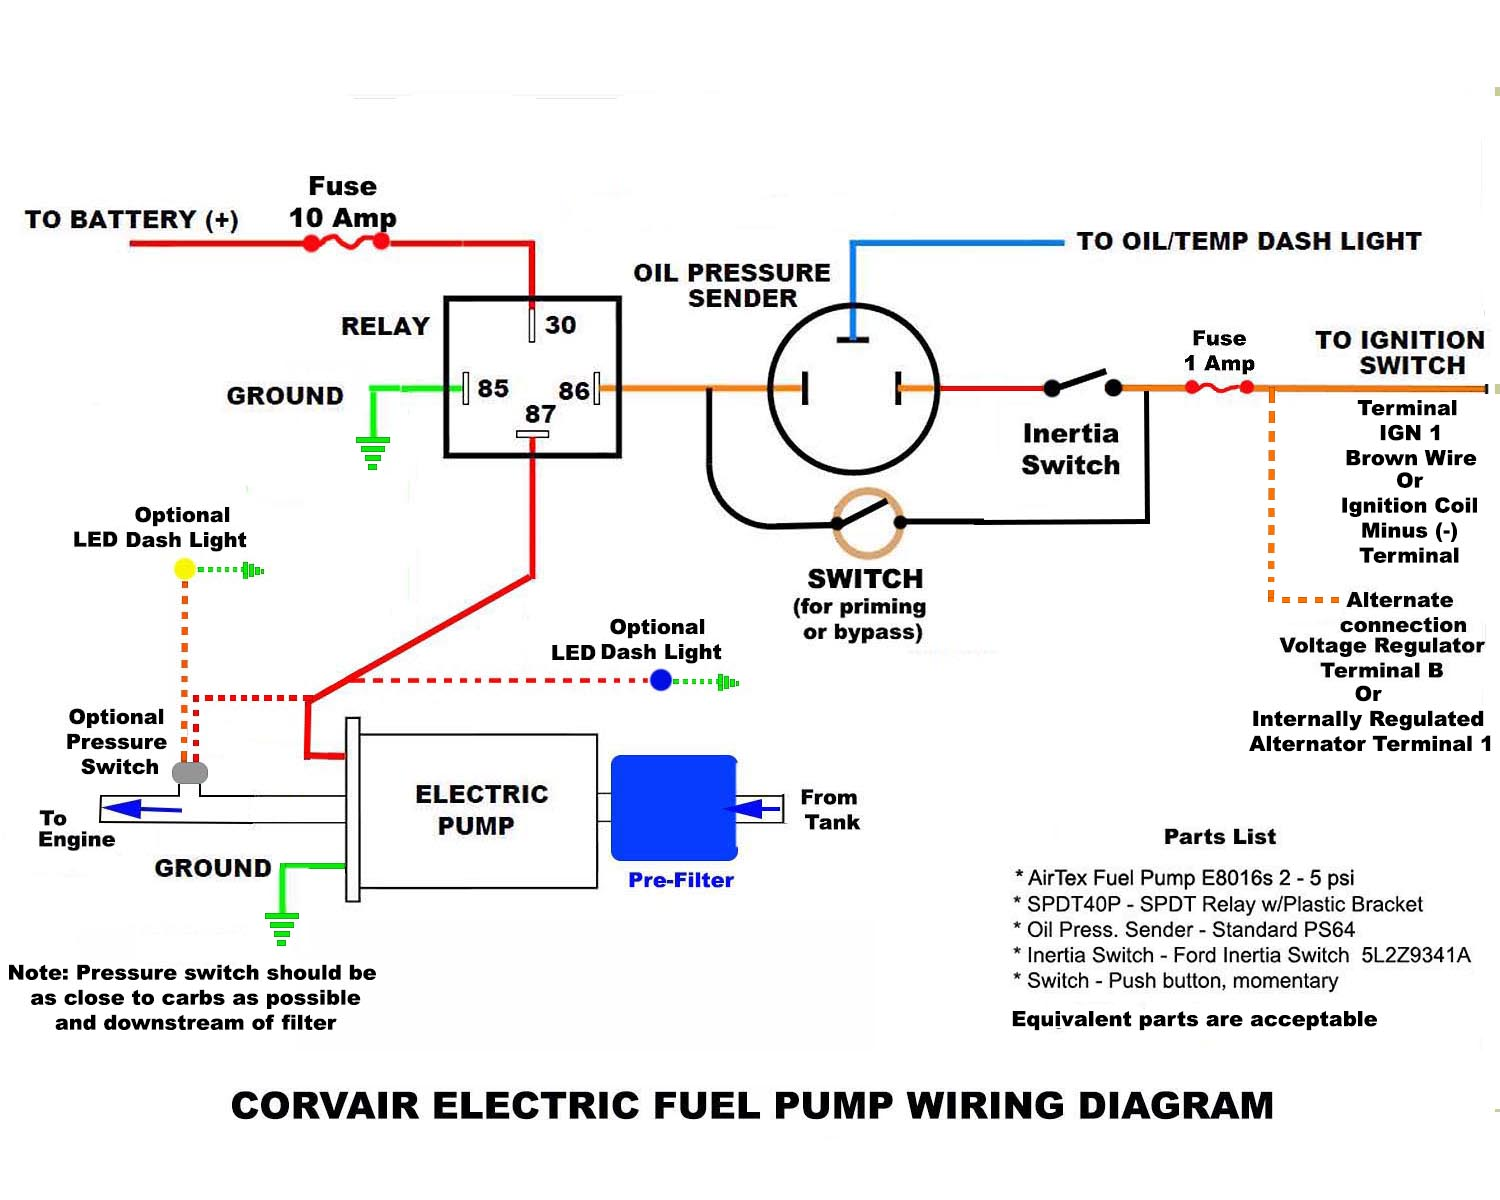 Typical Gm Electric Fuel Pump Wiring Schematic Library Attachments Options Replyquote Re Diagram